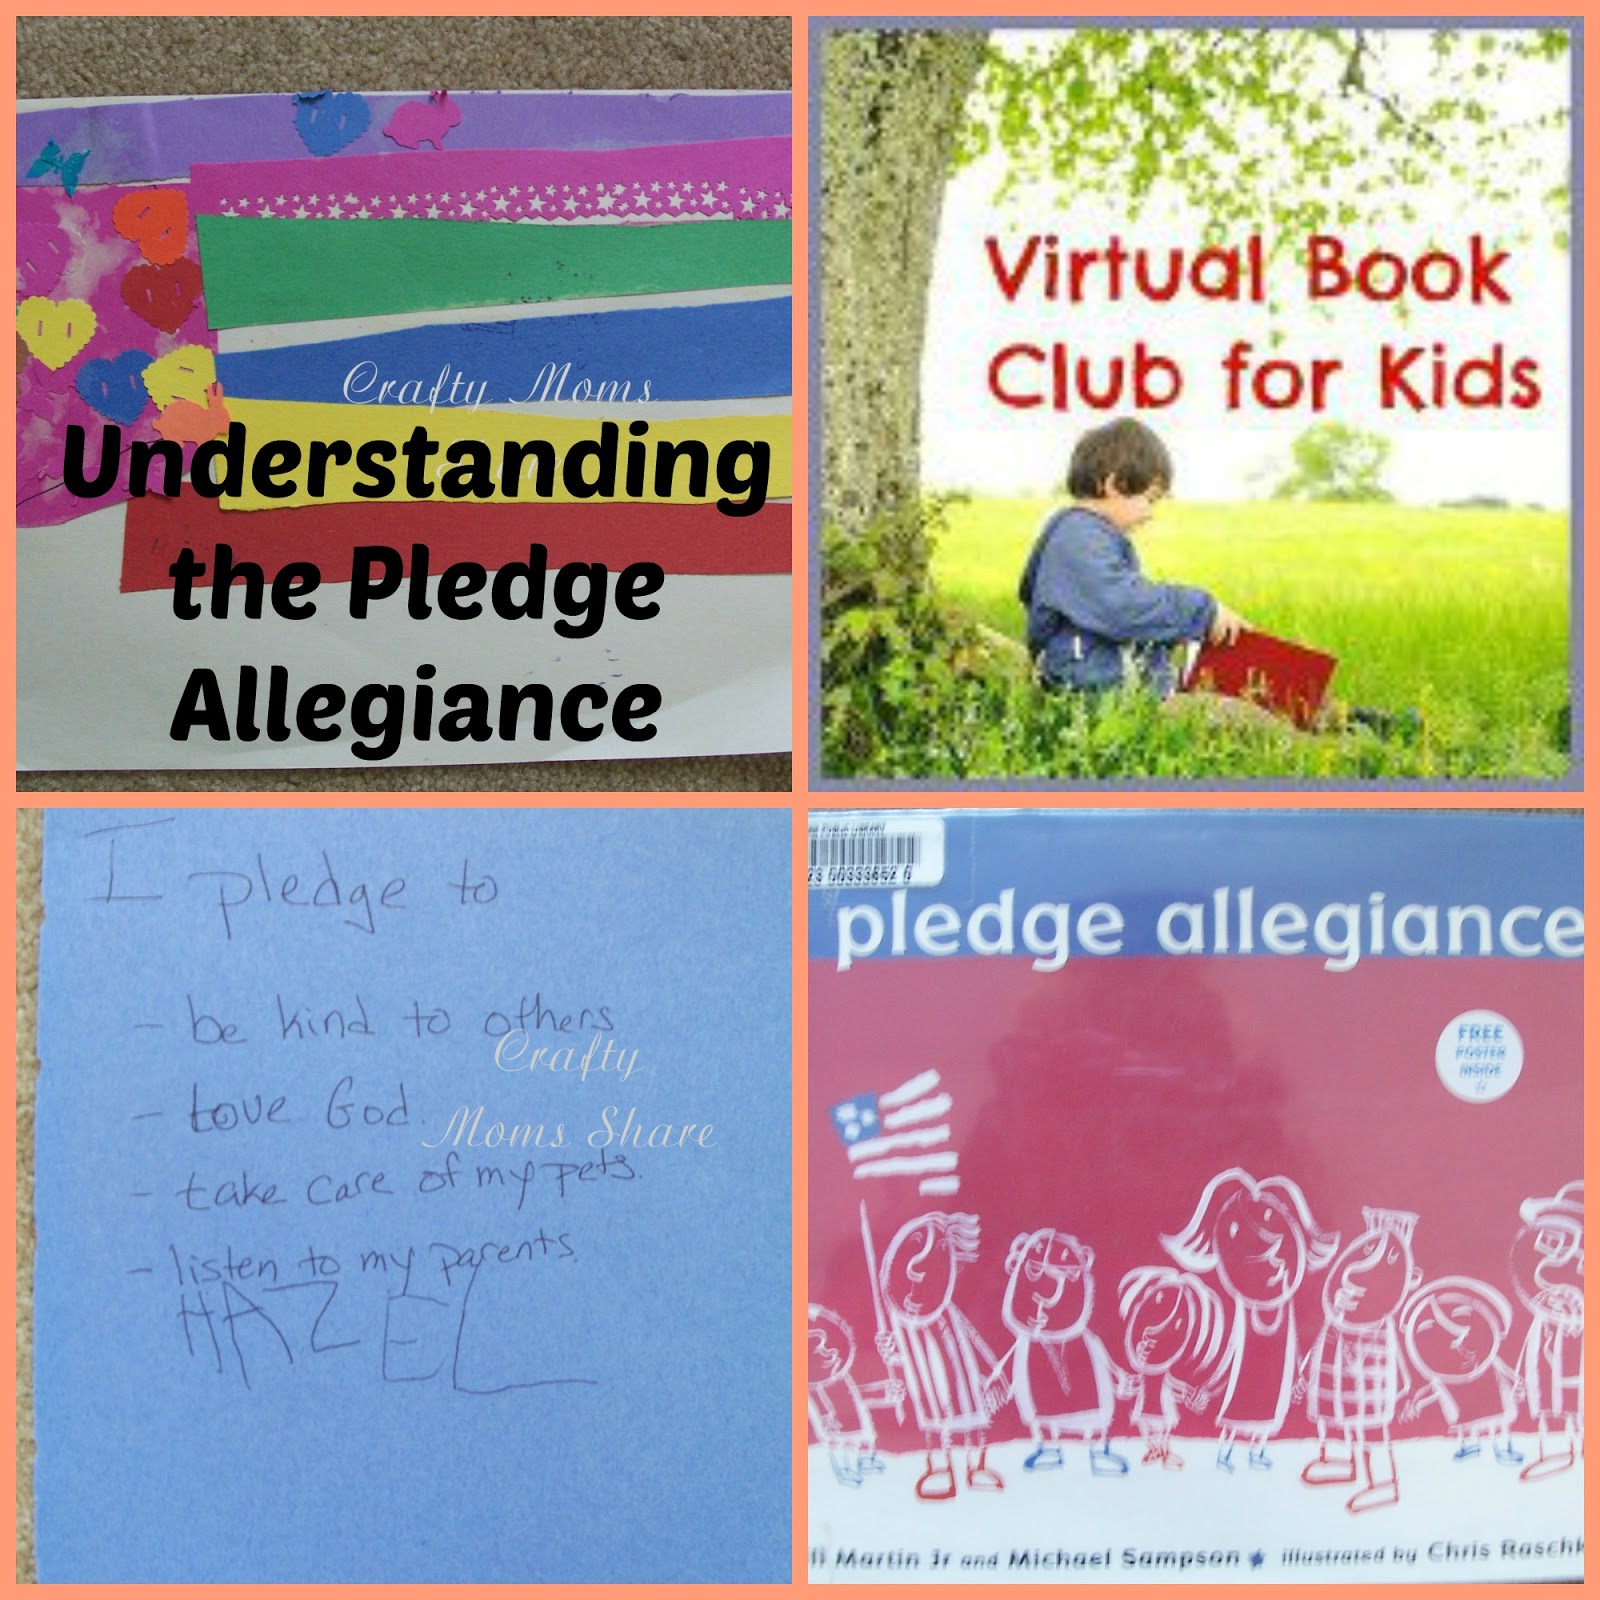 http://craftymomsshare.blogspot.com/2013/09/virtual-book-club-for-kids-i-pledge.html